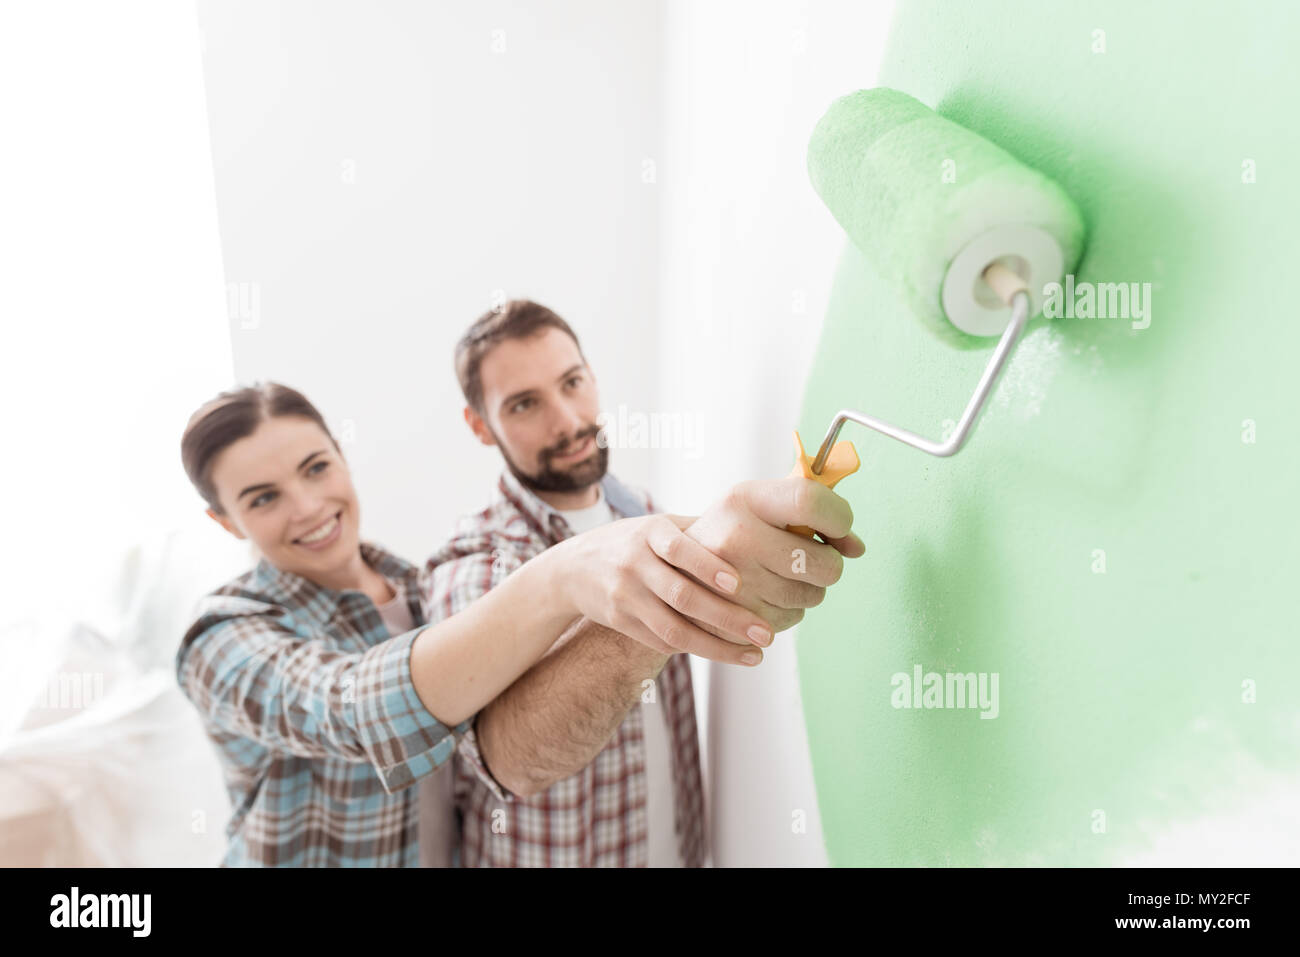 Young loving couple renovating their home, they are painting walls and holding a paint roller together - Stock Image